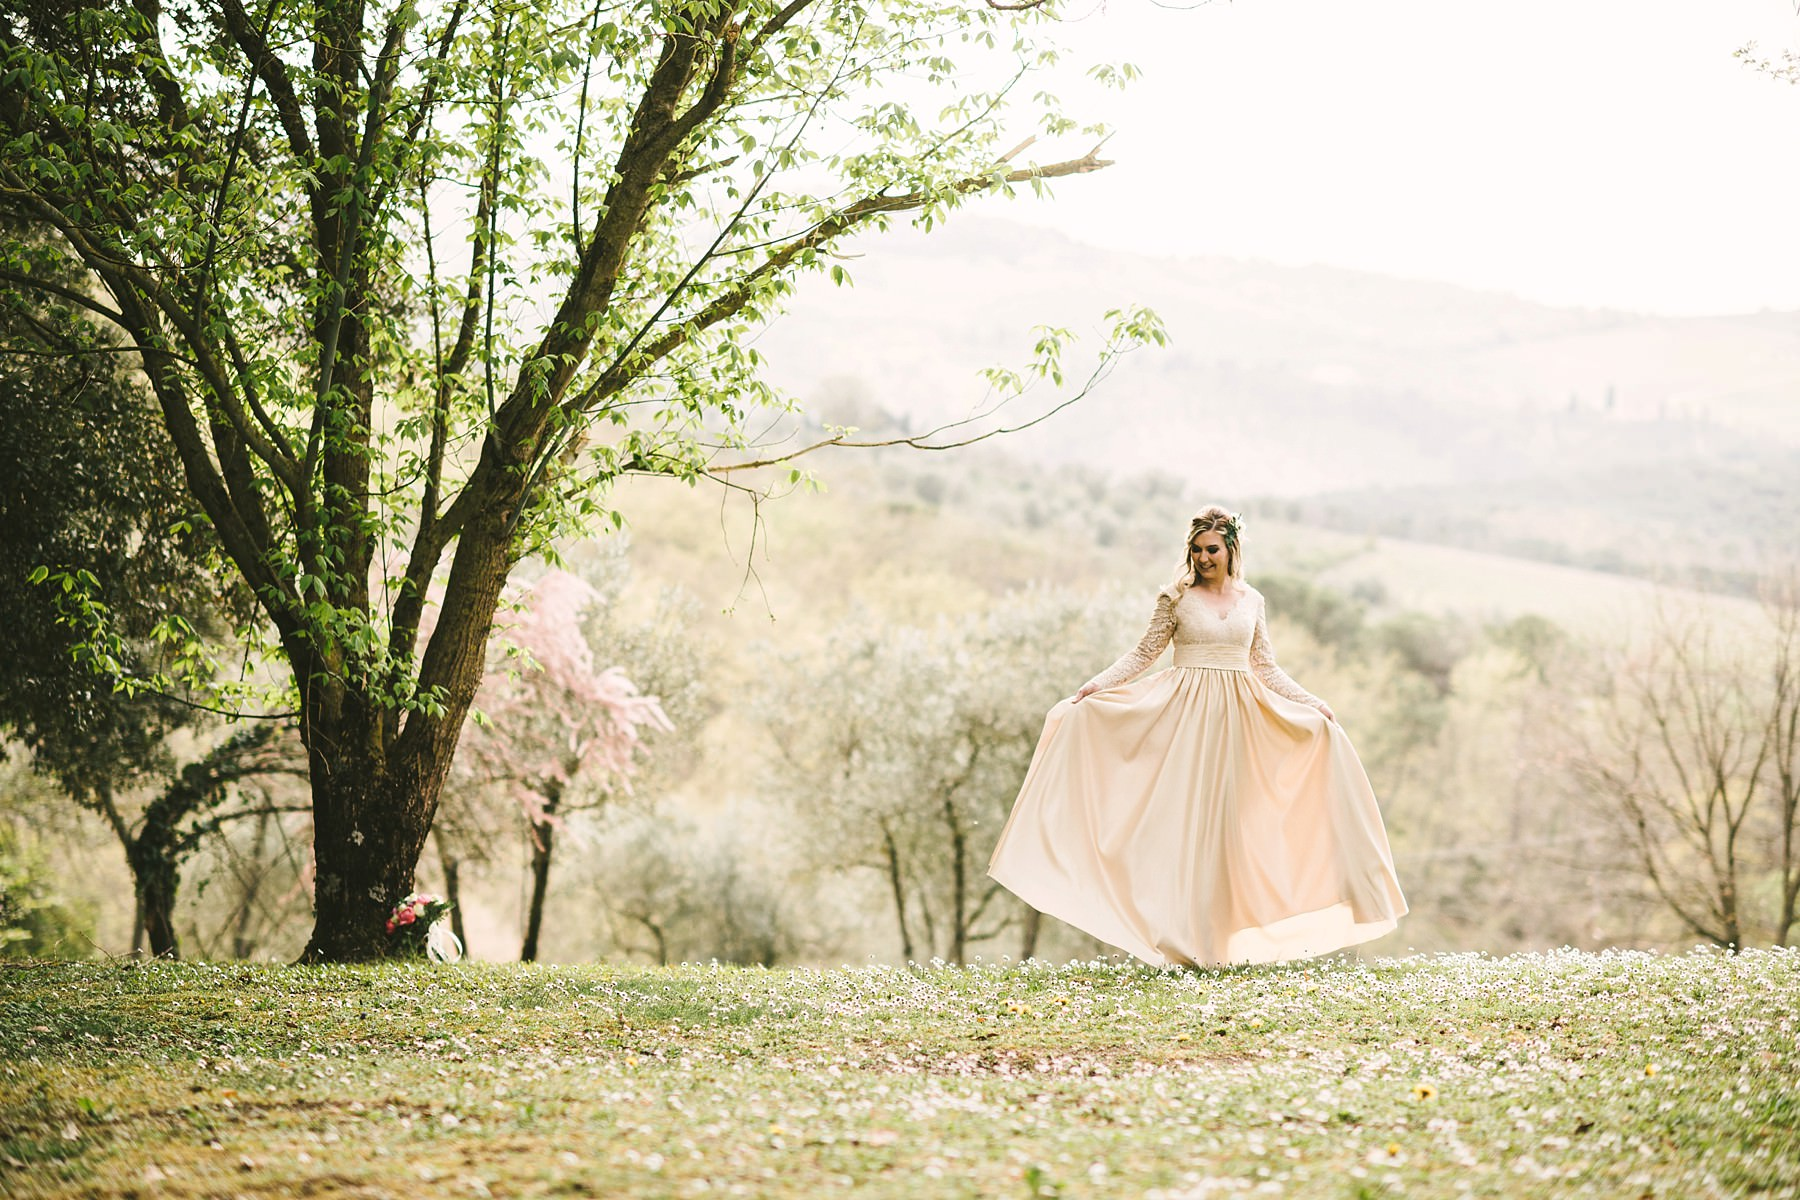 Lovely bridal portrait at Tenuta Nozzole in the countryside of Tuscany